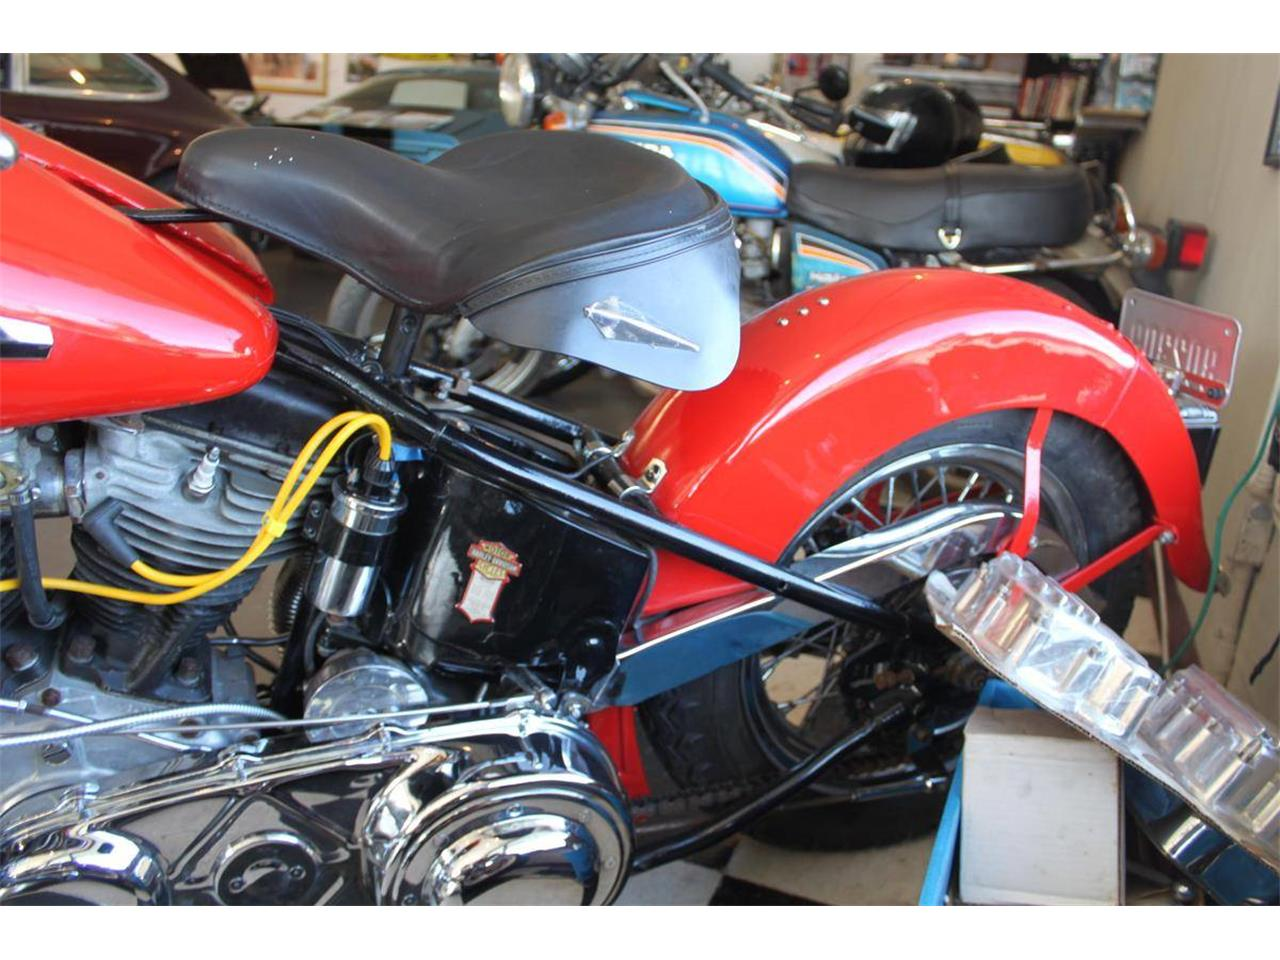 1950 Harley-Davidson Motorcycle for sale in Carnation, WA – photo 8